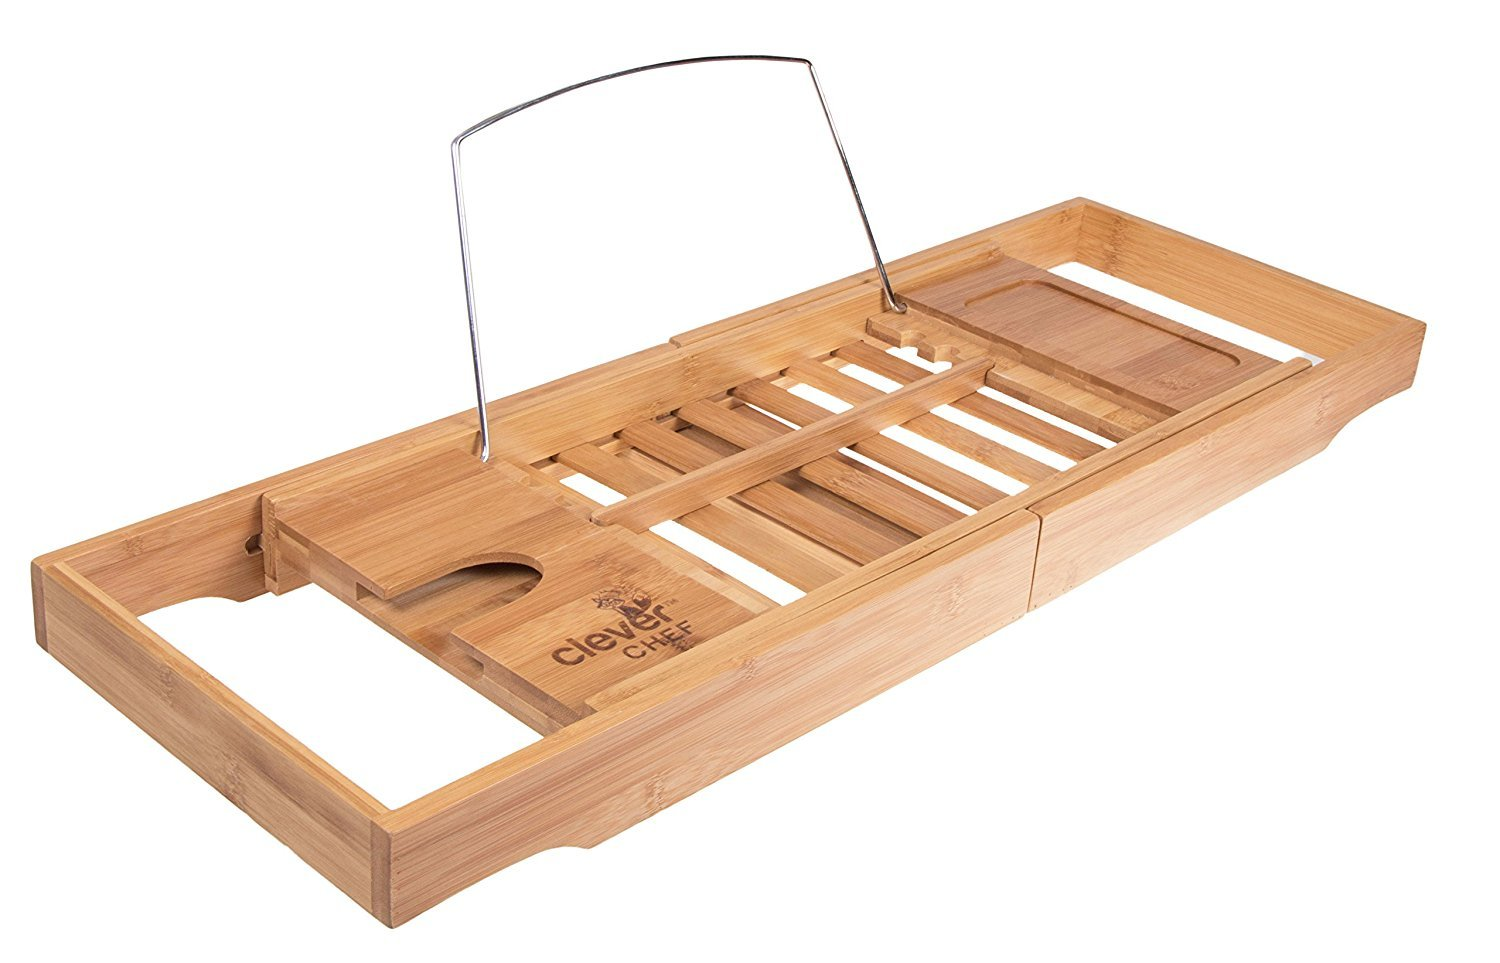 Premium Bamboo Bath Tub Caddy | Expandable Bath Tray with Wine Holder, Book Rest, & Phone Holder | Modern Design | Ultimate Relaxation | Expands to Any Tub Size Clever Creations